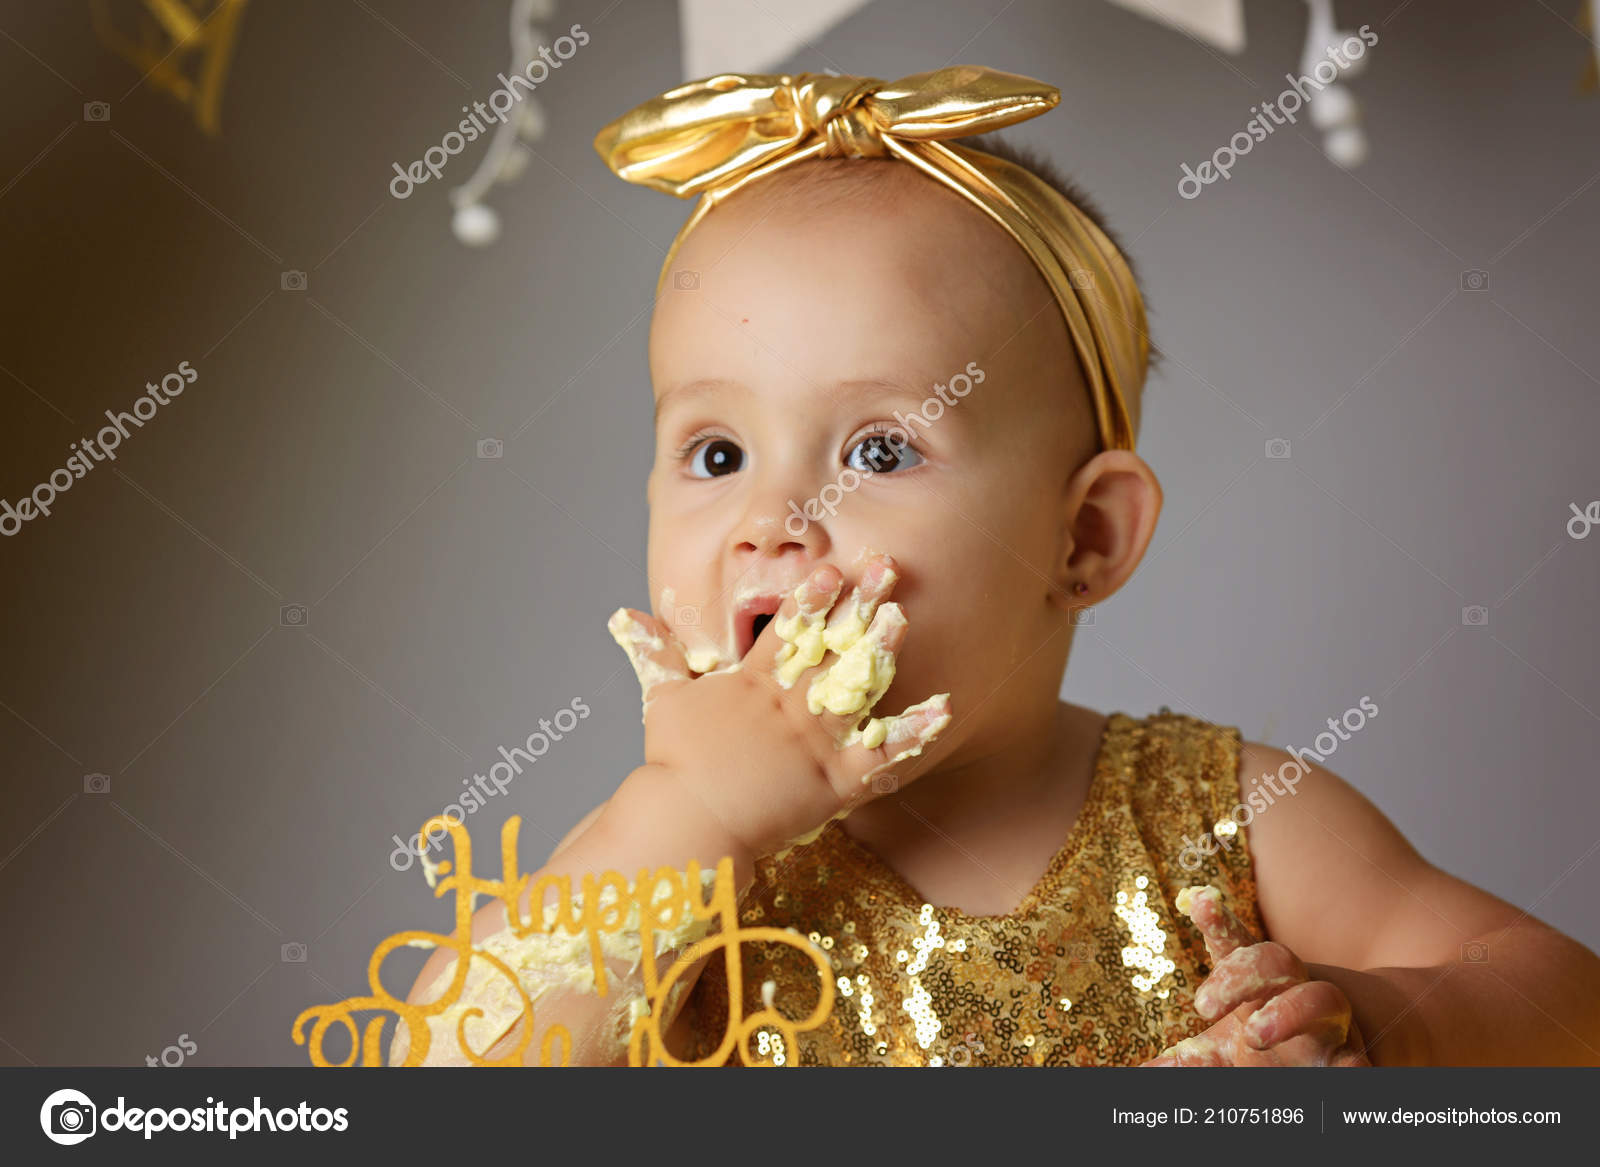 Small Sweet Baby Girl In A Golden Dress With A Bow On Her Head